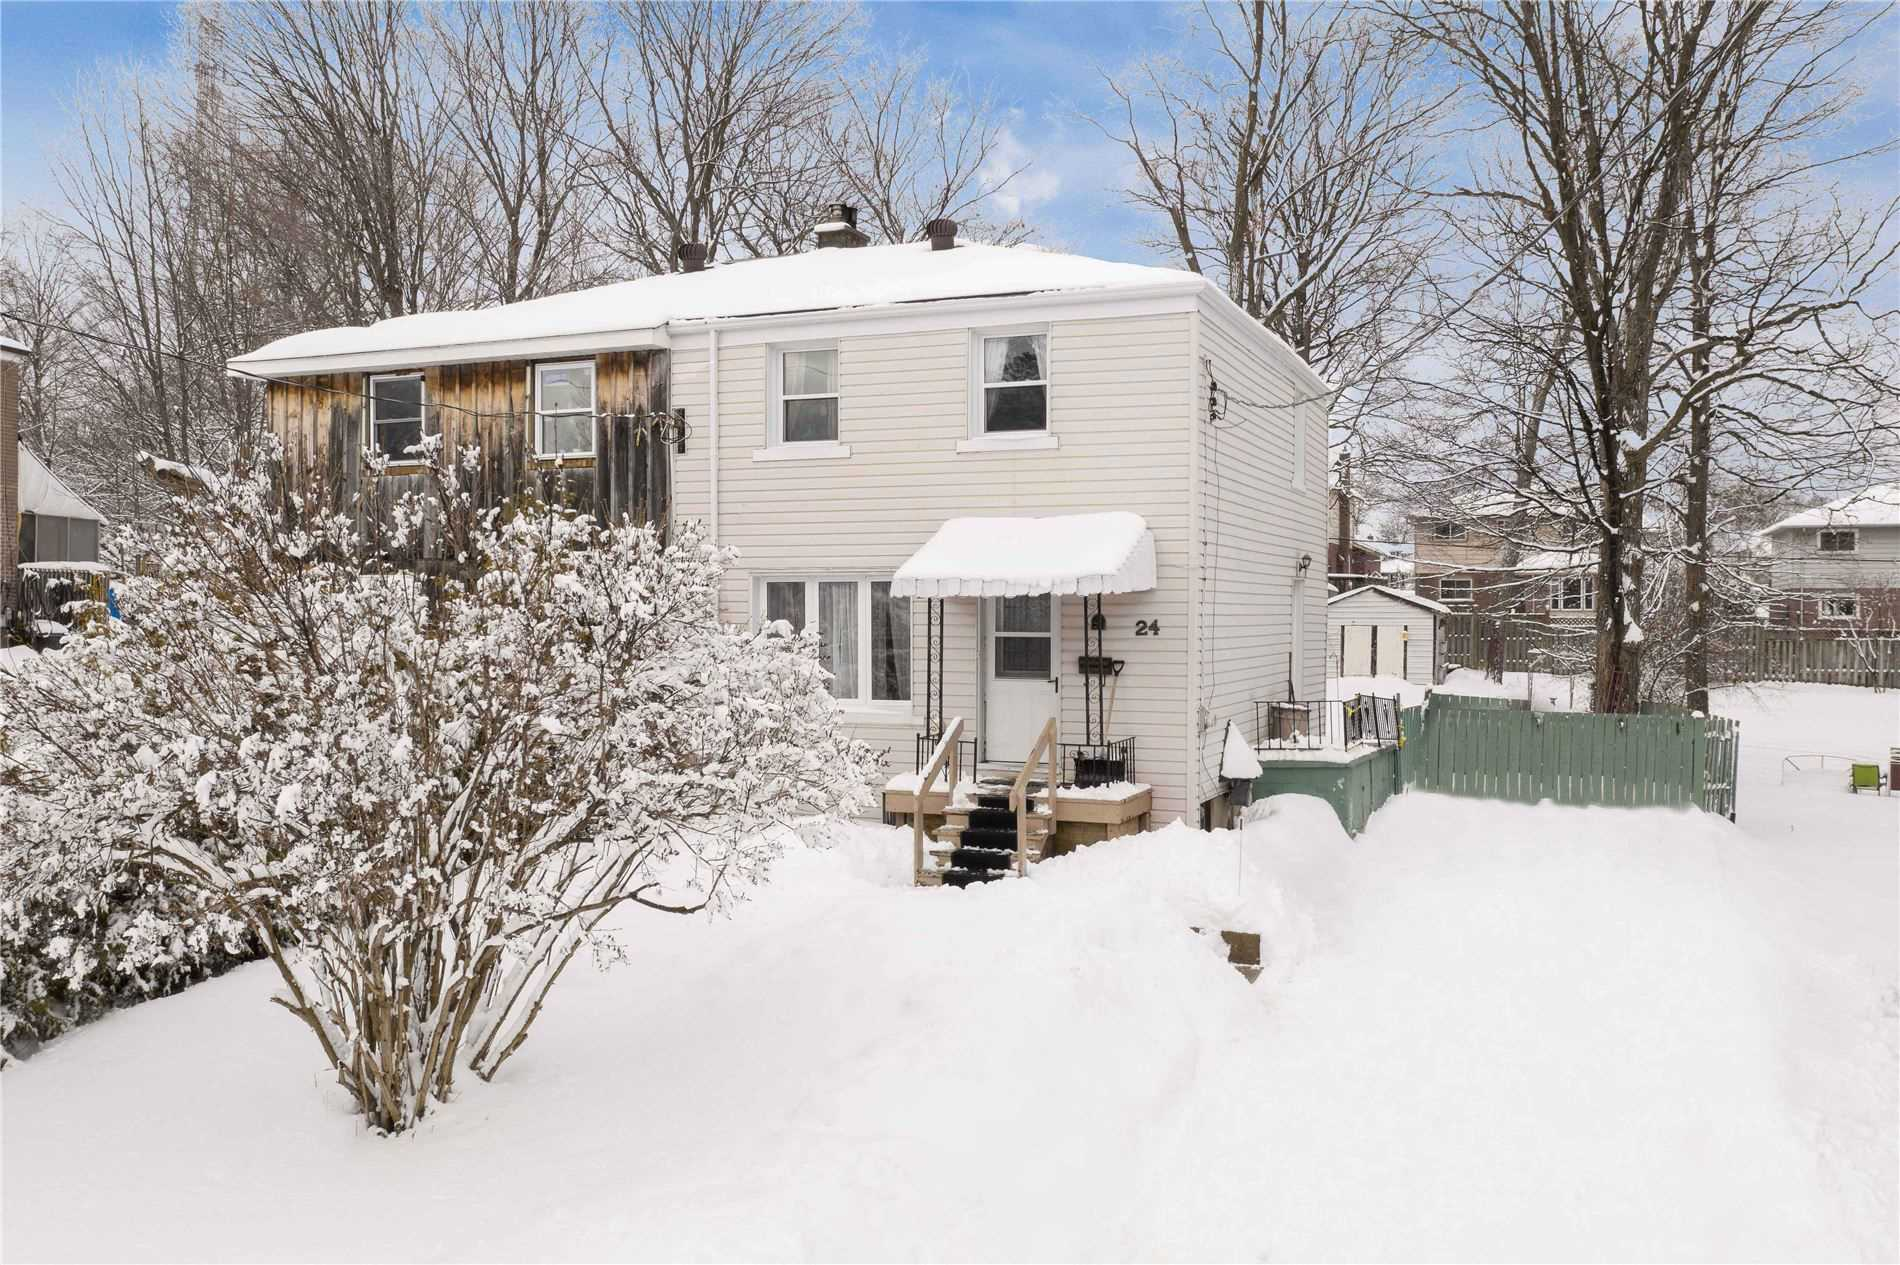 pictures of house for sale MLS: S4690812 located at 24 Sandra Dr, Orillia L3V3G7